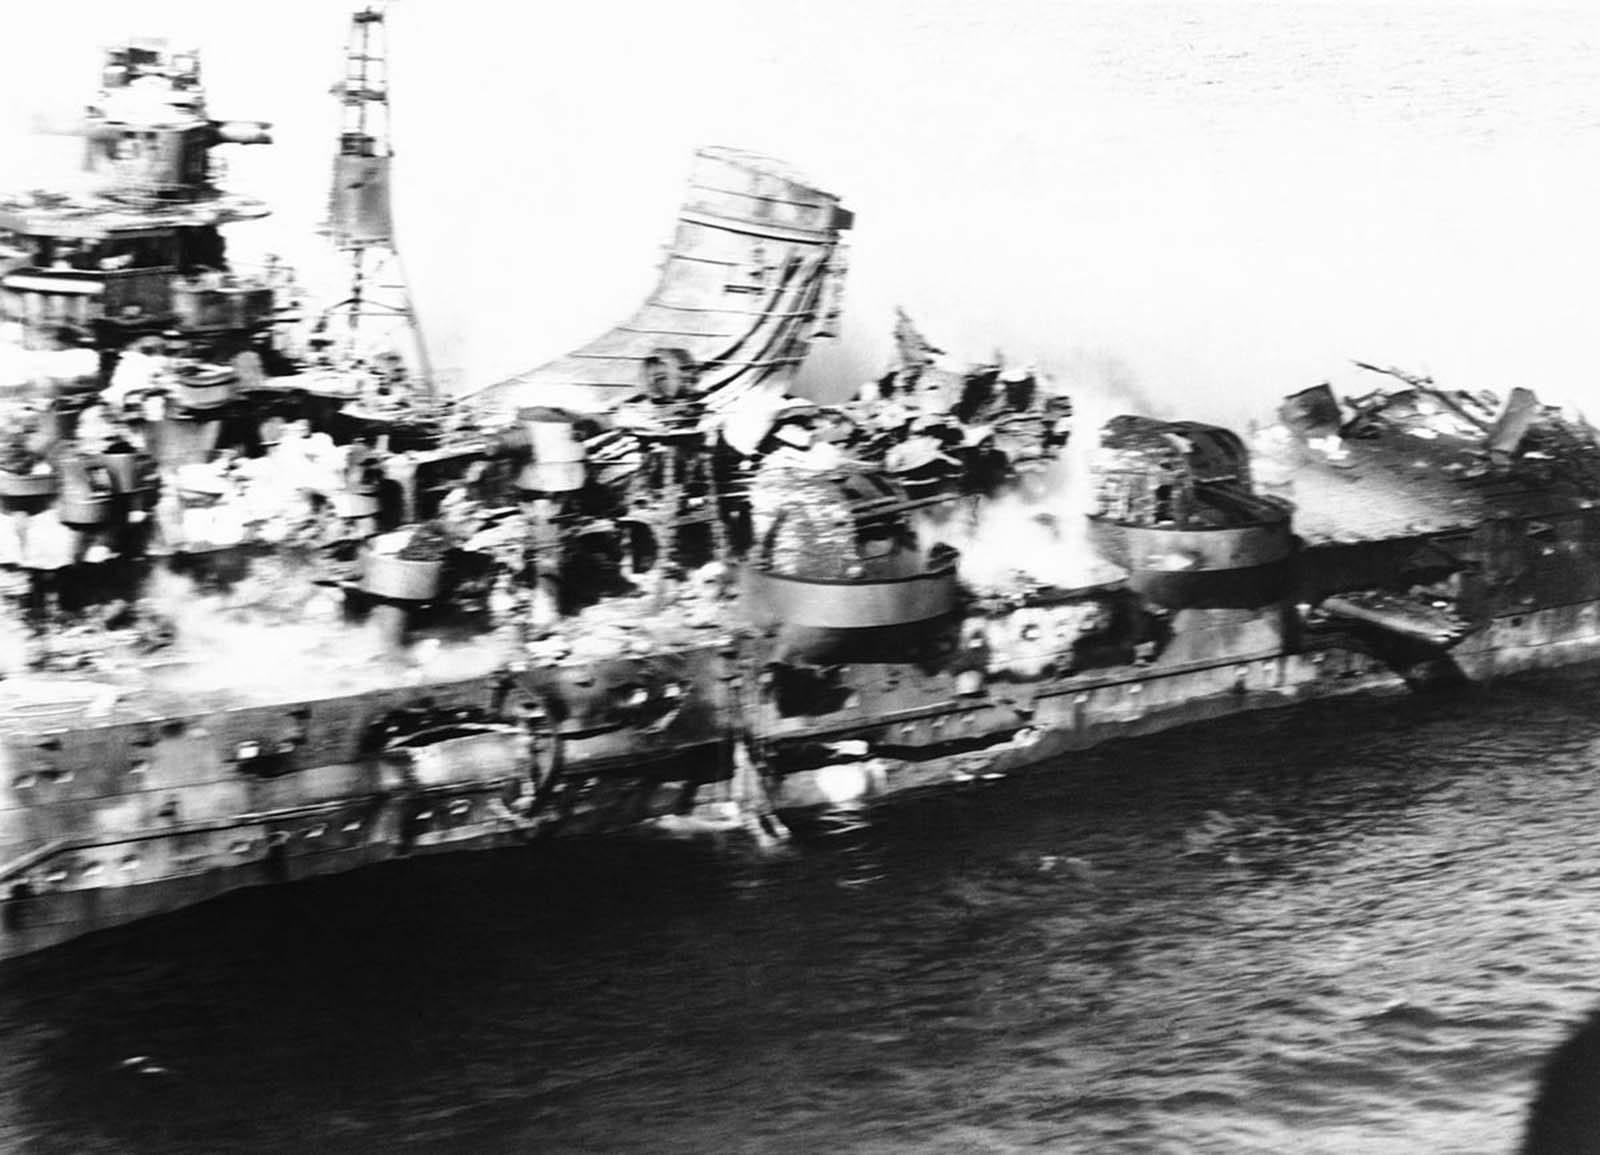 Flying dangerously close, a U.S. Navy photographer got this spectacular aerial view of a heavy Japanese cruiser of the Mogima class, demolished by Navy bombs, in the battle of Midway, in June of 1942. Armor plate, steel decks and superstructure are a tumbled mass.